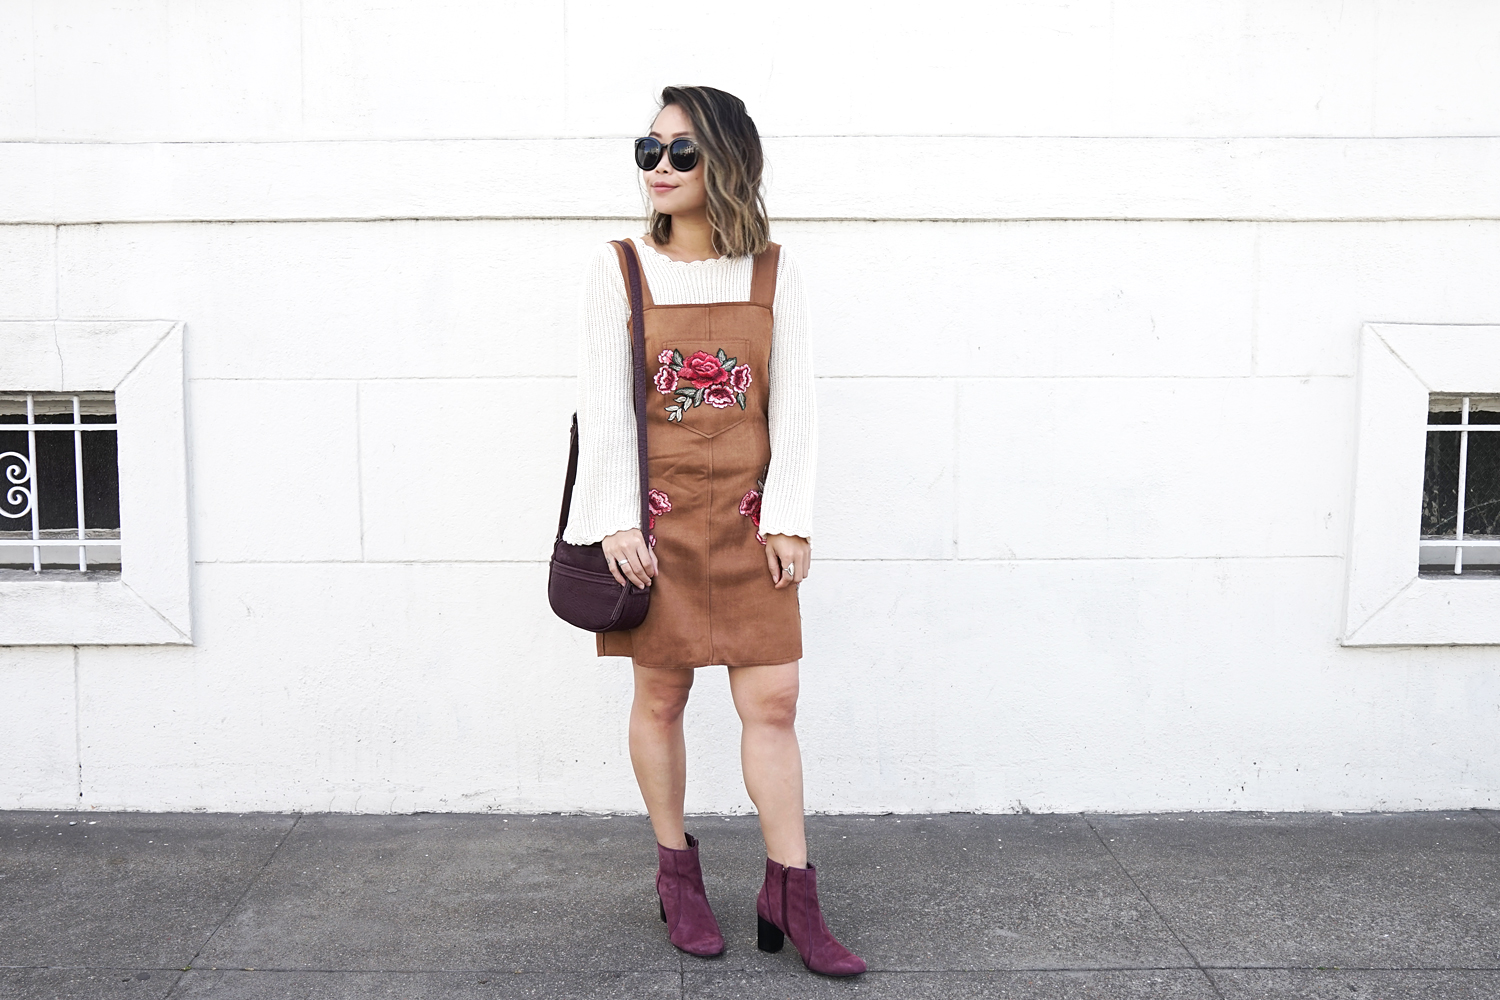 09hushpuppies-suede-boots-pinafore-floral-embroidery-fall-fashion-style